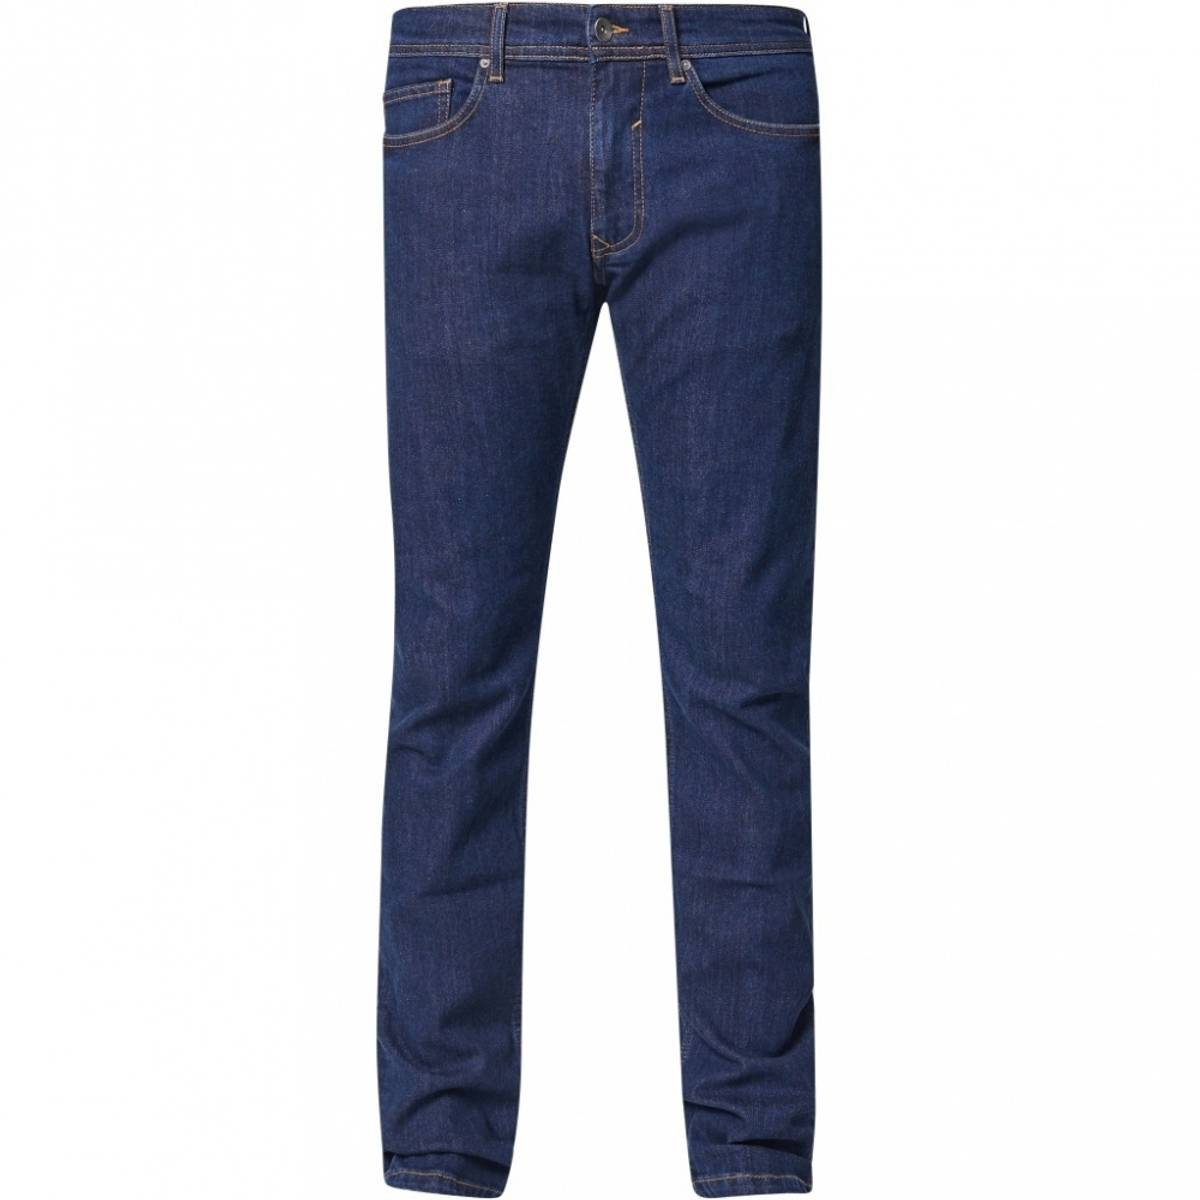 Jeans North56°4, 42